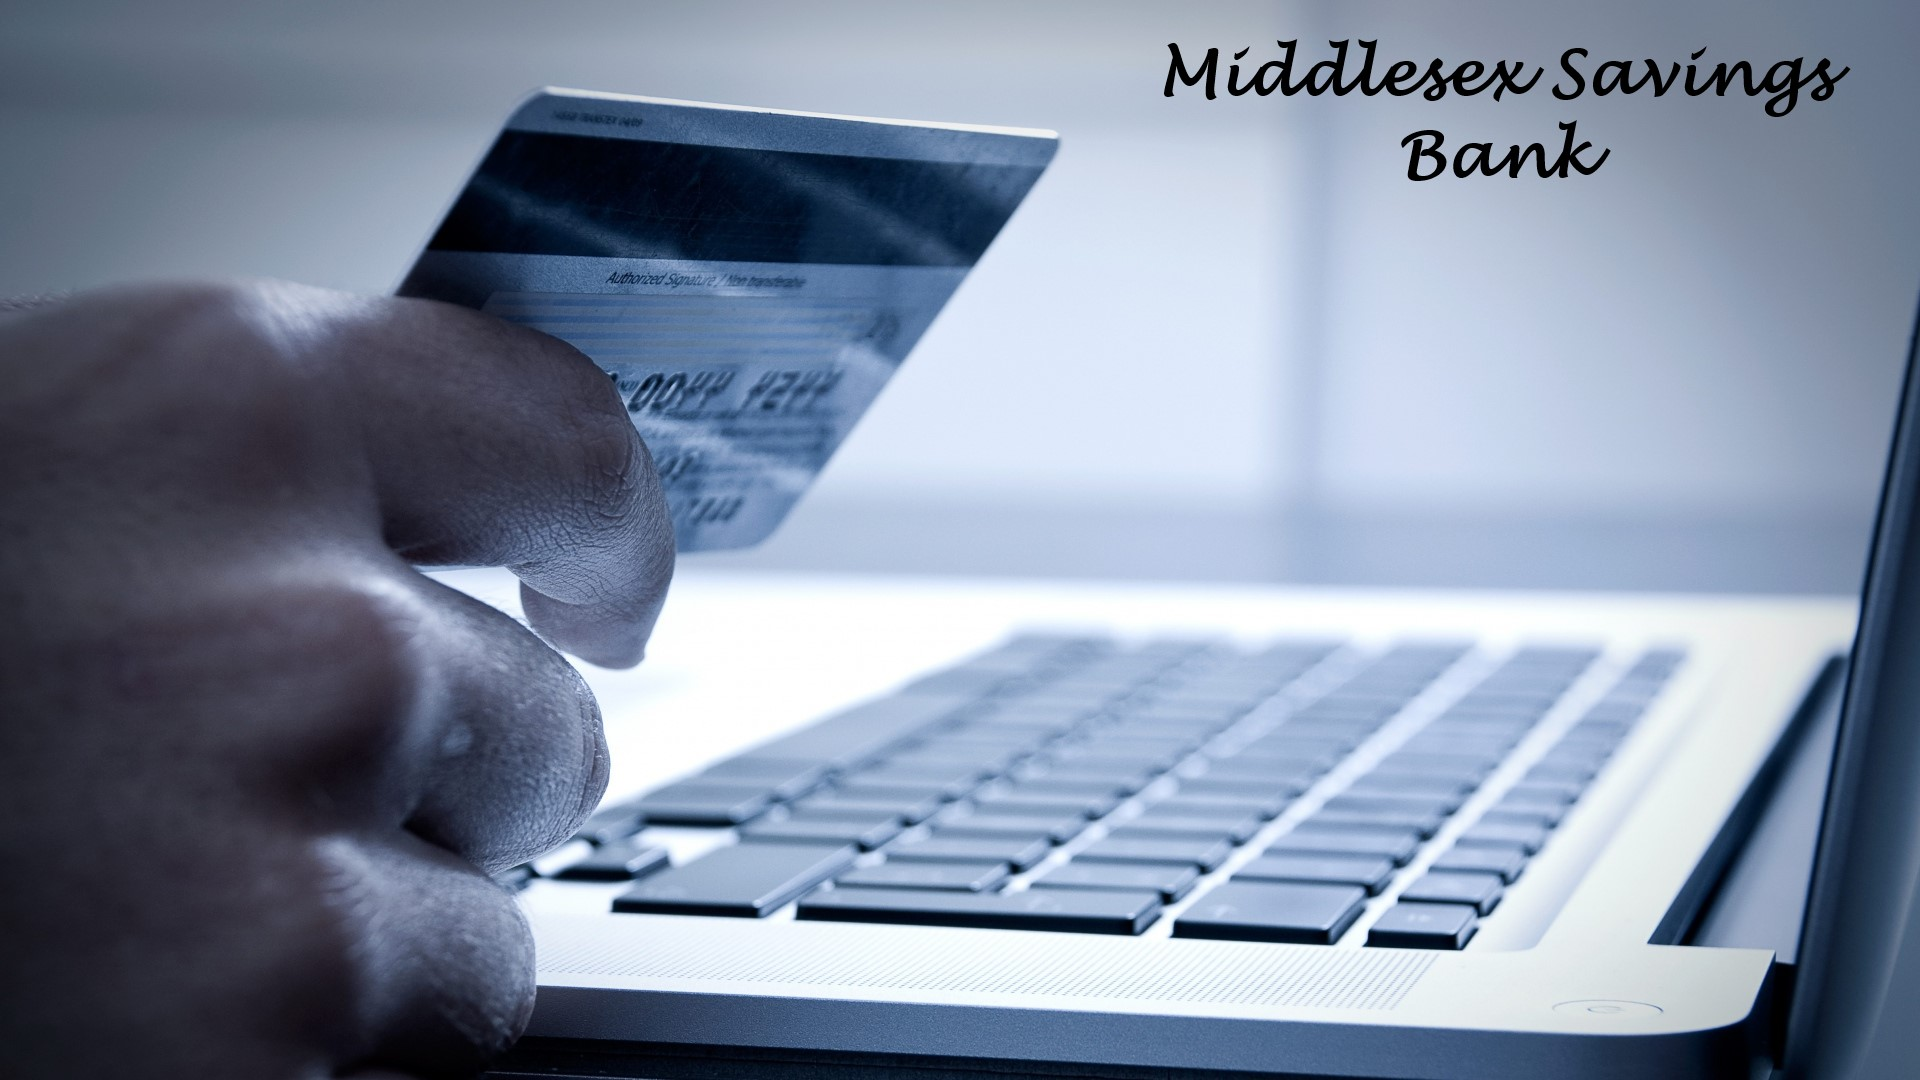 Middlesex Savings Bank Routing Number